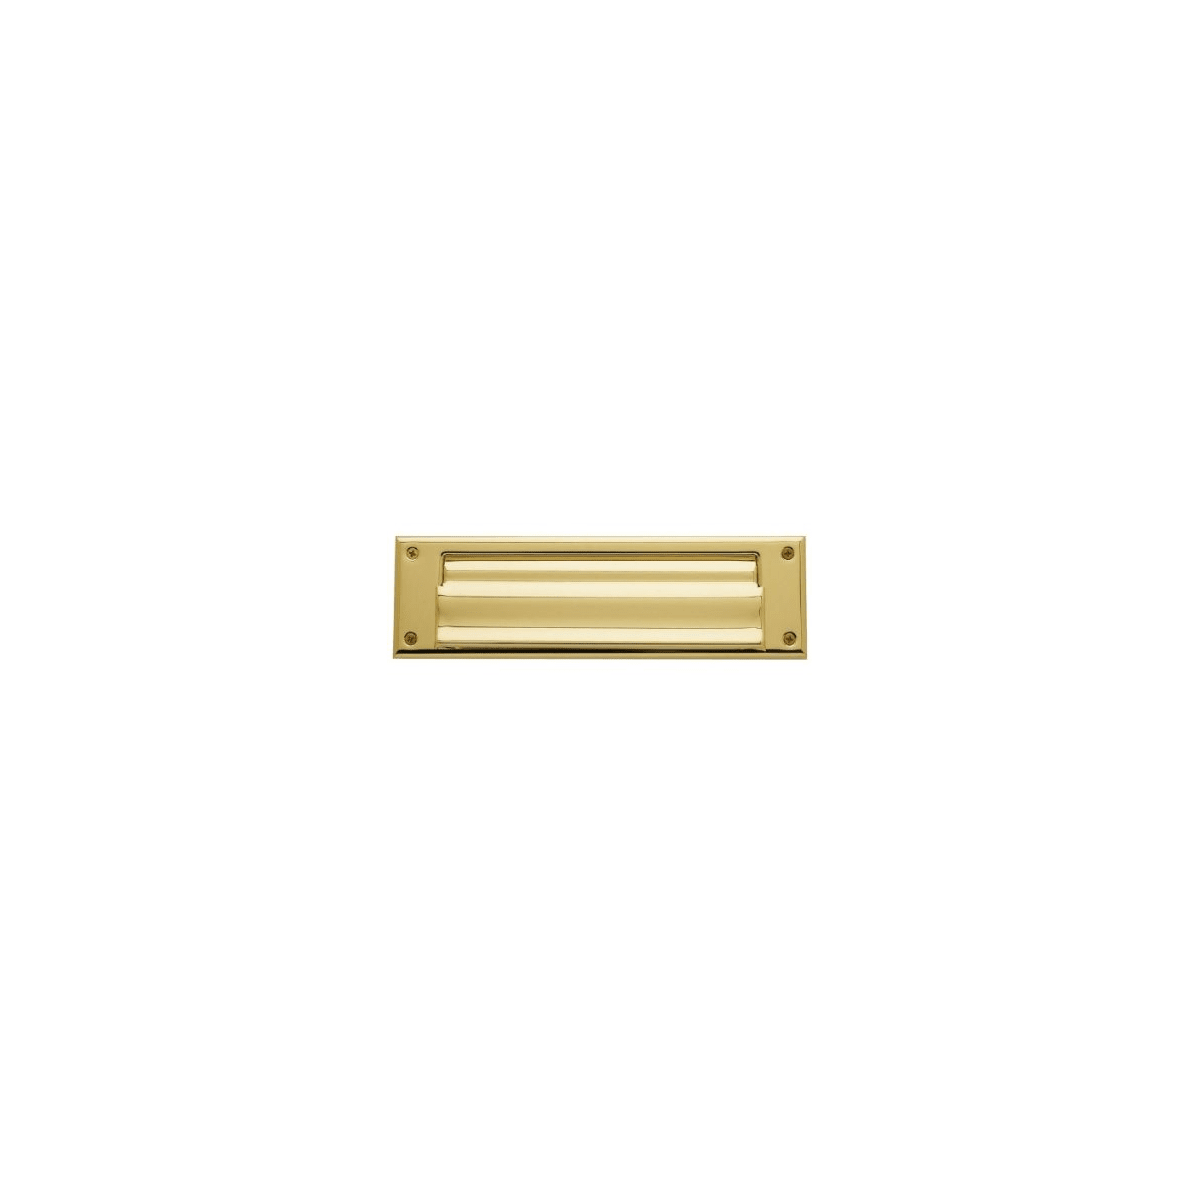 Baldwin Magazine Sized Spring Tension Brass Letter Box Plate with Hinged Interior Cover